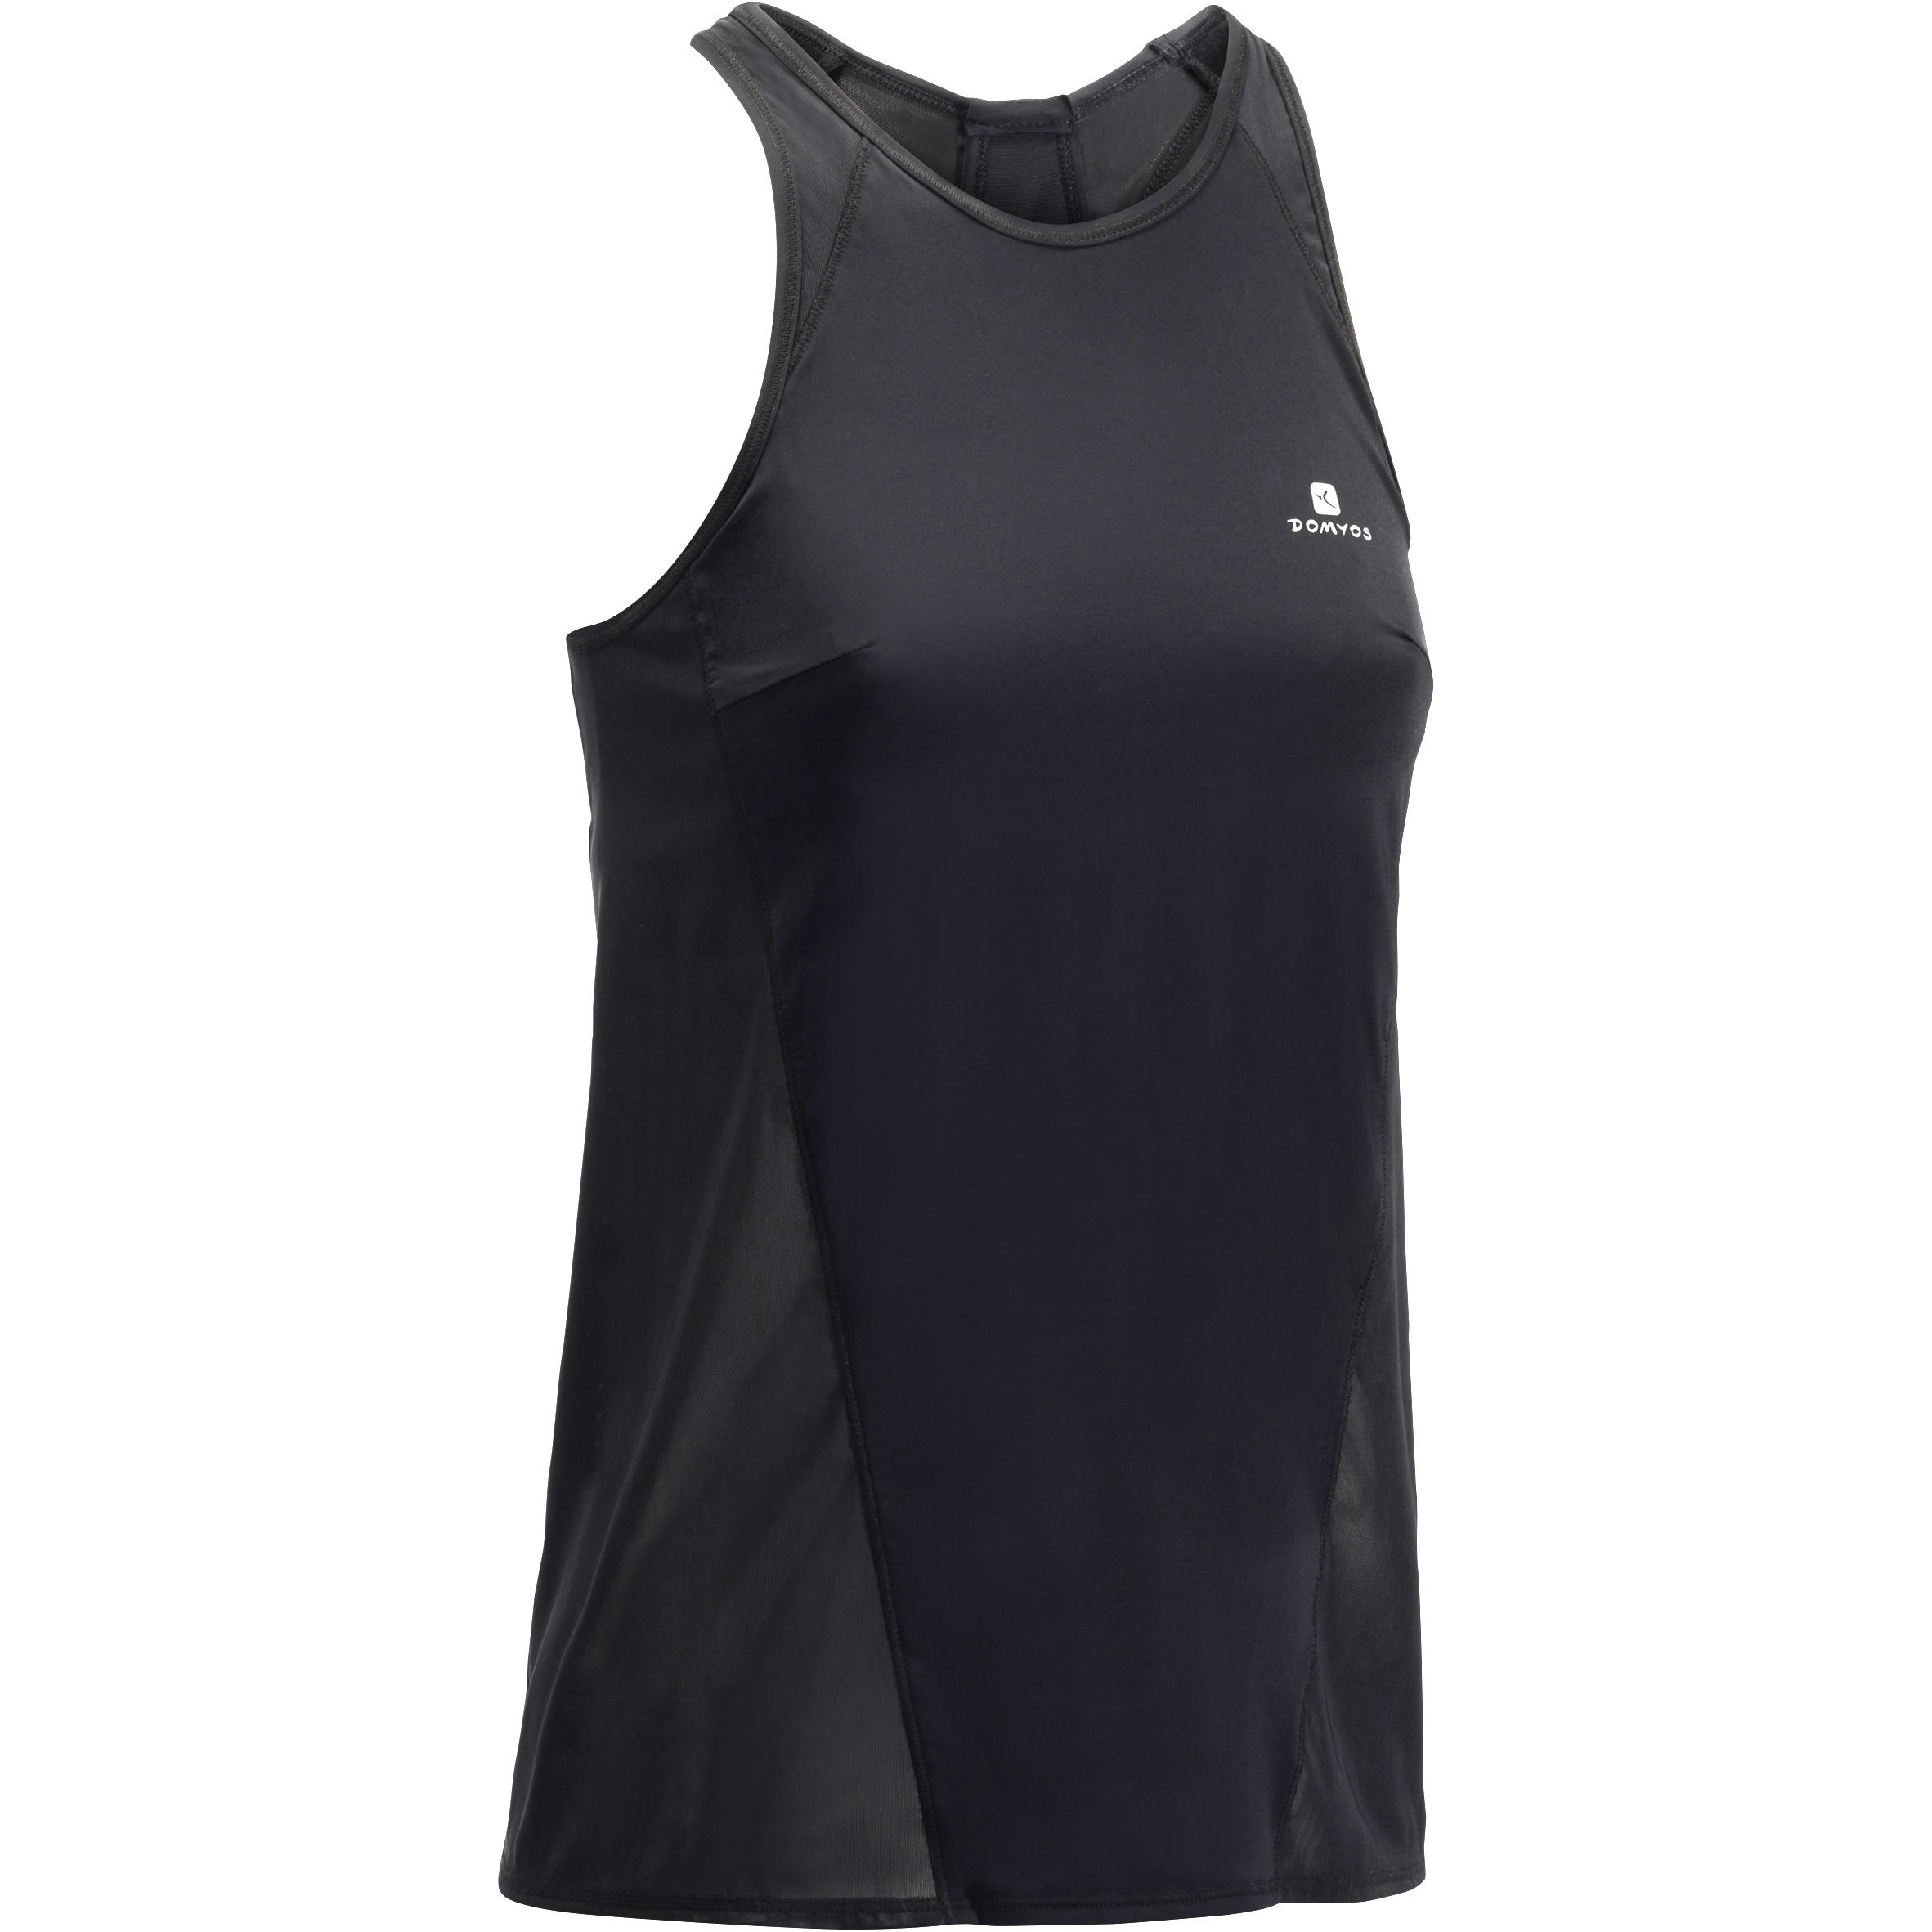 900 Women's Cardio Fitness Tank Top with Built-in Bra - Black